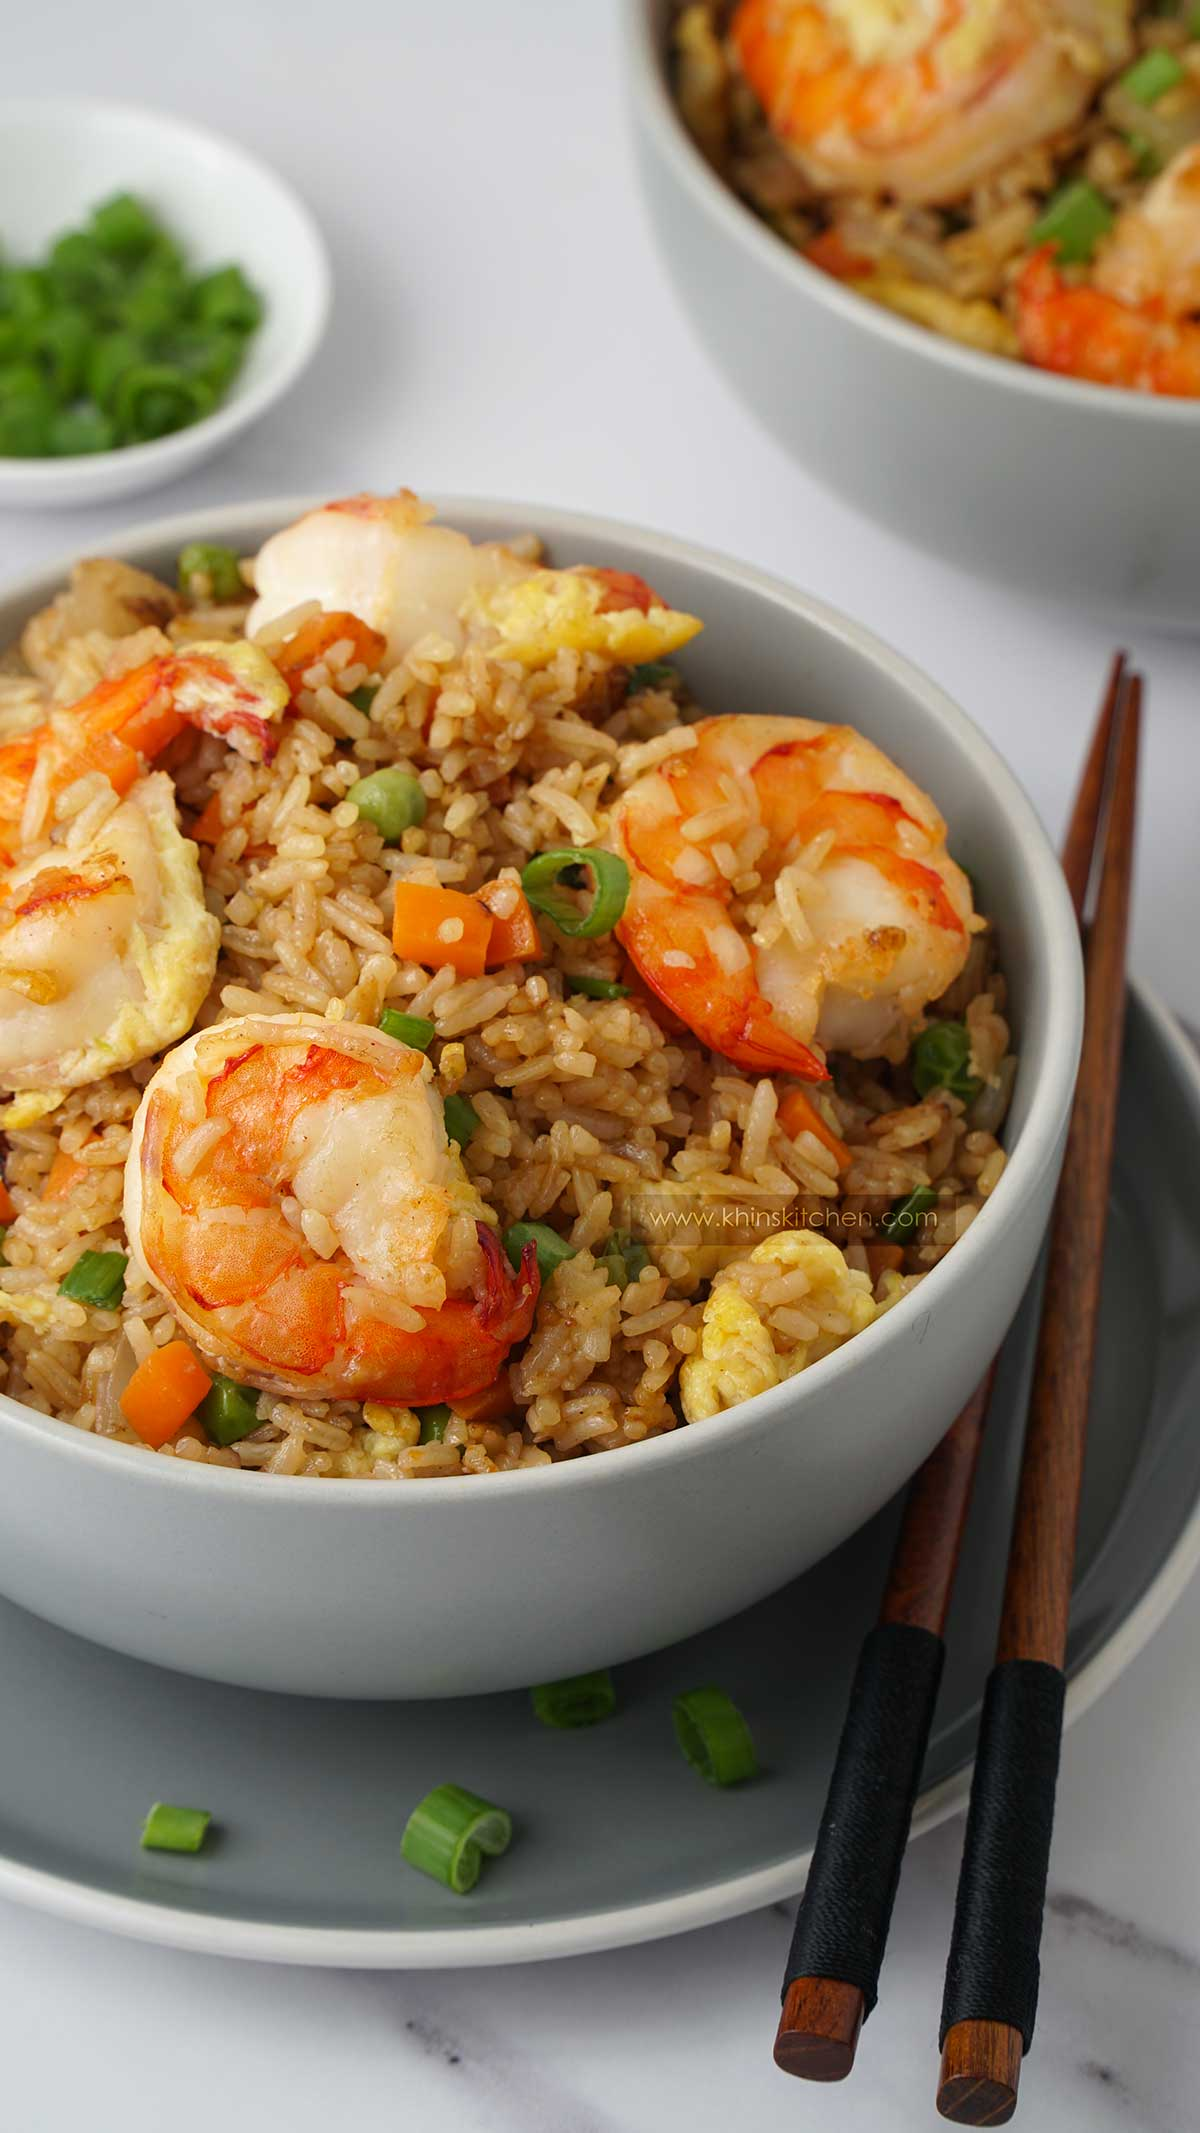 Rice, king prawns, vegetables in the grey bowl with wooden chop stick on the side.